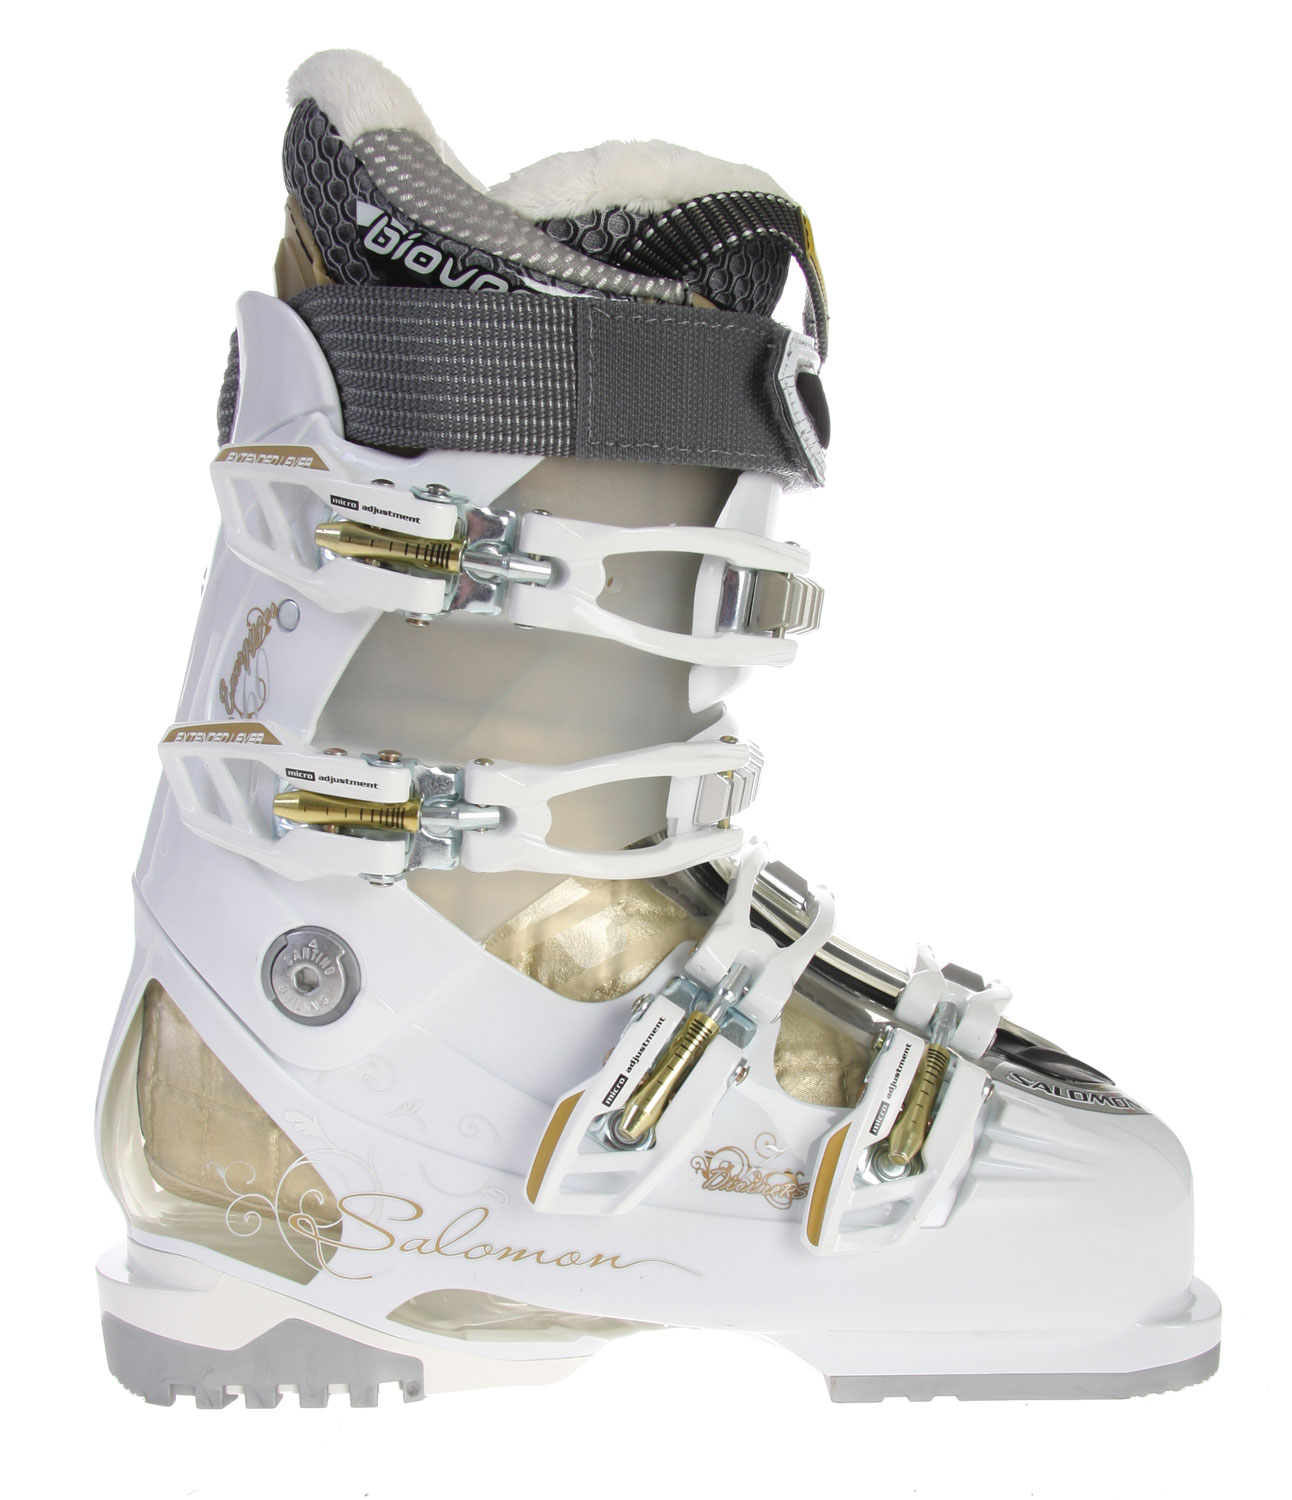 Ski Many frustrated shoppers assume that comfort and style simply cannot be combined in a price effective manner, yet the Salomon Divine RS 7 Ski Boots are evidence of the exact opposite. An intricate series of buckles ensures that the foot stays securely within the boot and no bitter snow sneaks its way into the interior. Yet even so, the buckles are specially built to still allow for regular mobility. The boots are sleek and glossy and come with faux fur in order to give off  a cute impression.Key Features of the Salomon Divine RS 7 Ski Boots:  Bi material PU lower shell  Bi-material PP upper cuff  My Custom Fit Sport  Biovent  Faux fur  Women liner  Women calves adjustment  Flex: 60  Last: 102  Strap: 35 - $379.95